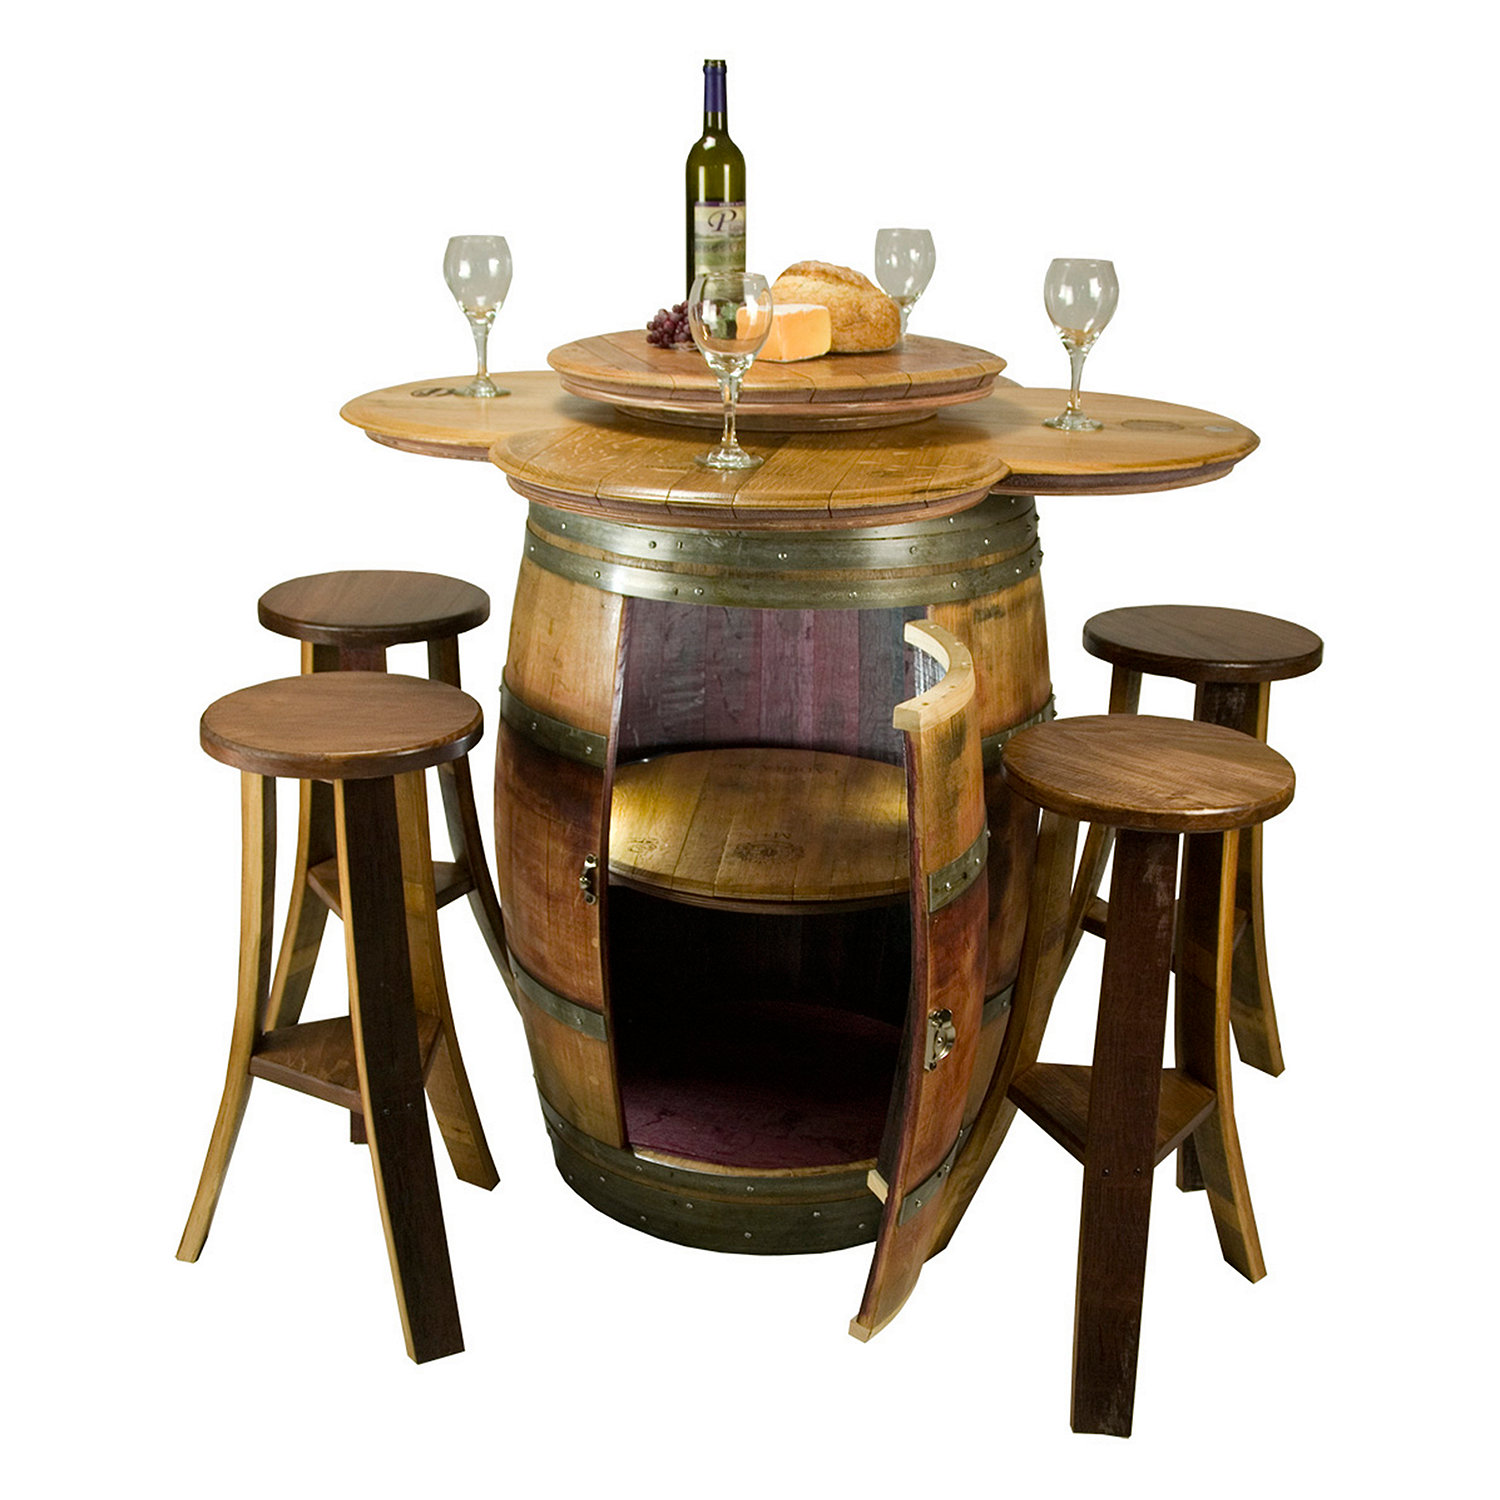 Reclaimed Barrel Table with Storage and 4 Stave Stools Wine